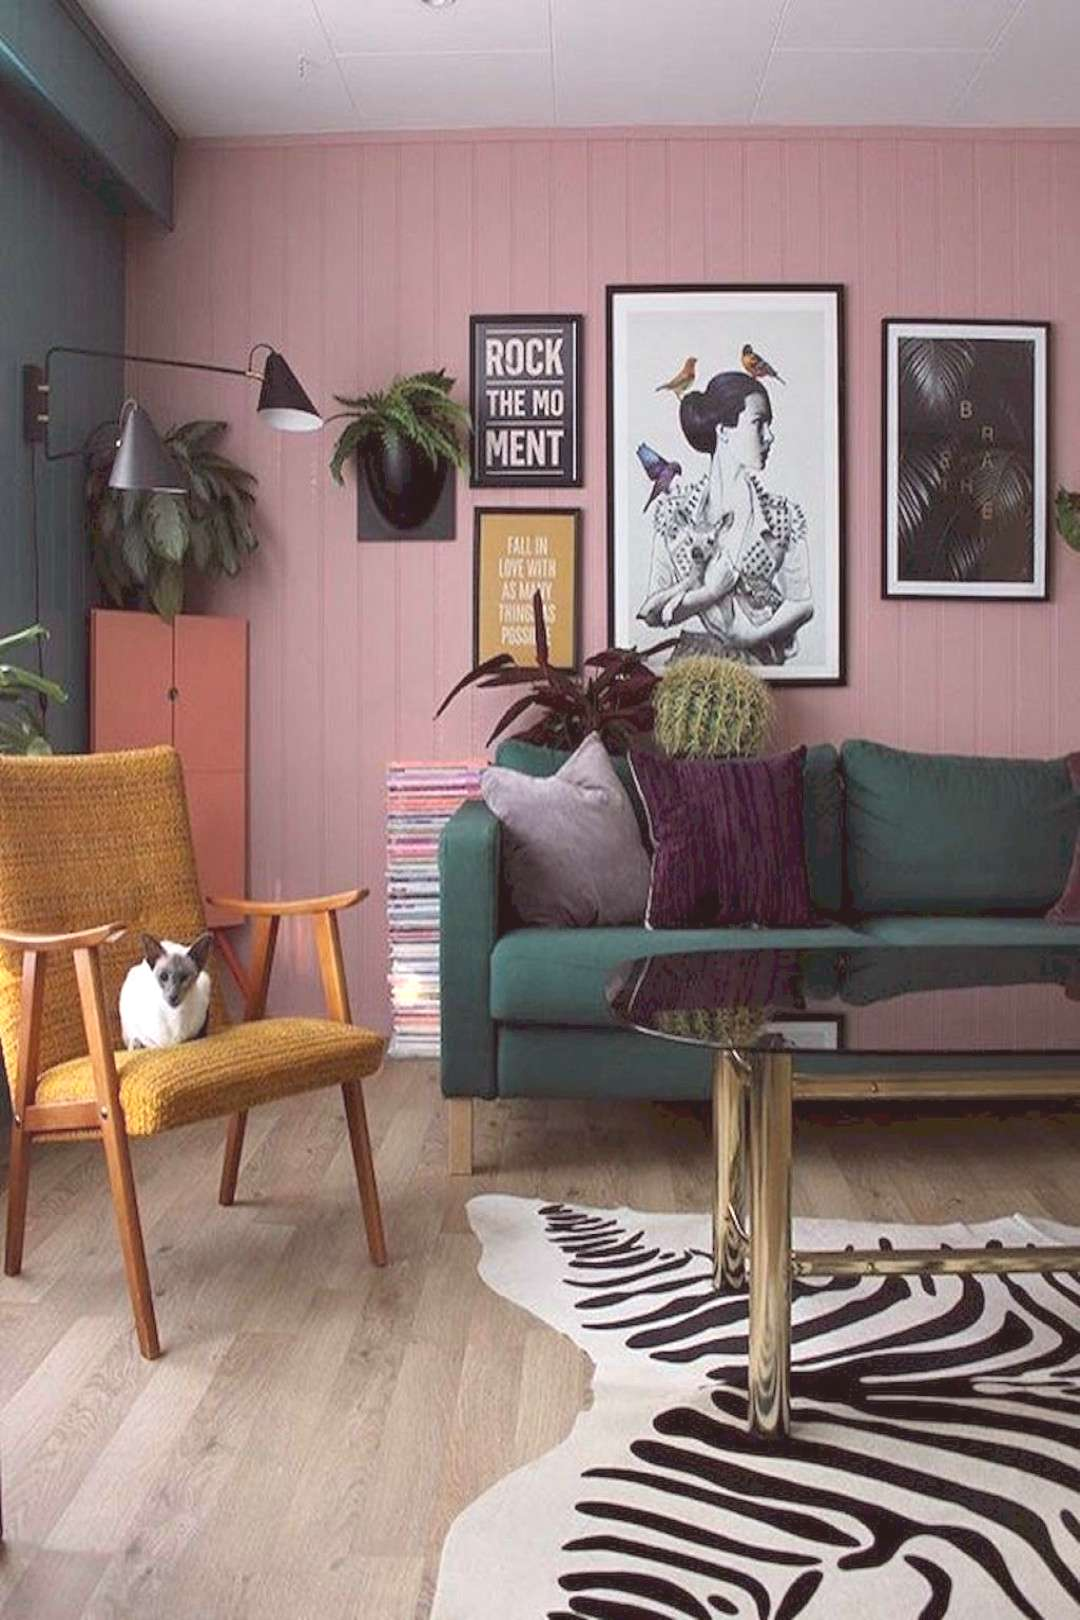 45+Arresting Retro Living Room Decorating Ideas on A Budget -